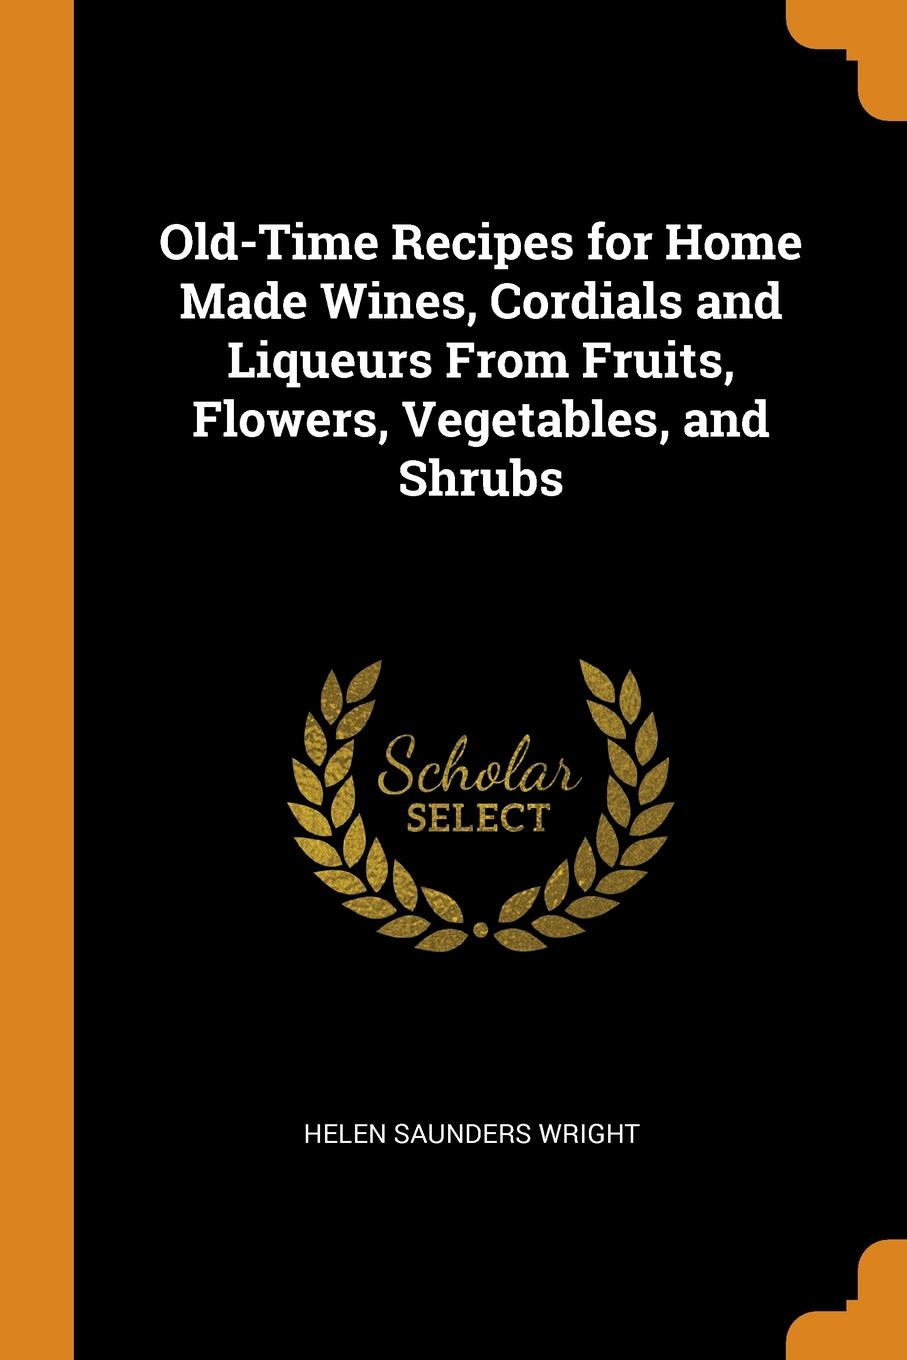 Helen Saunders Wright Old-Time Recipes for Home Made Wines, Cordials and Liqueurs From Fruits, Flowers, Vegetables, and Shrubs